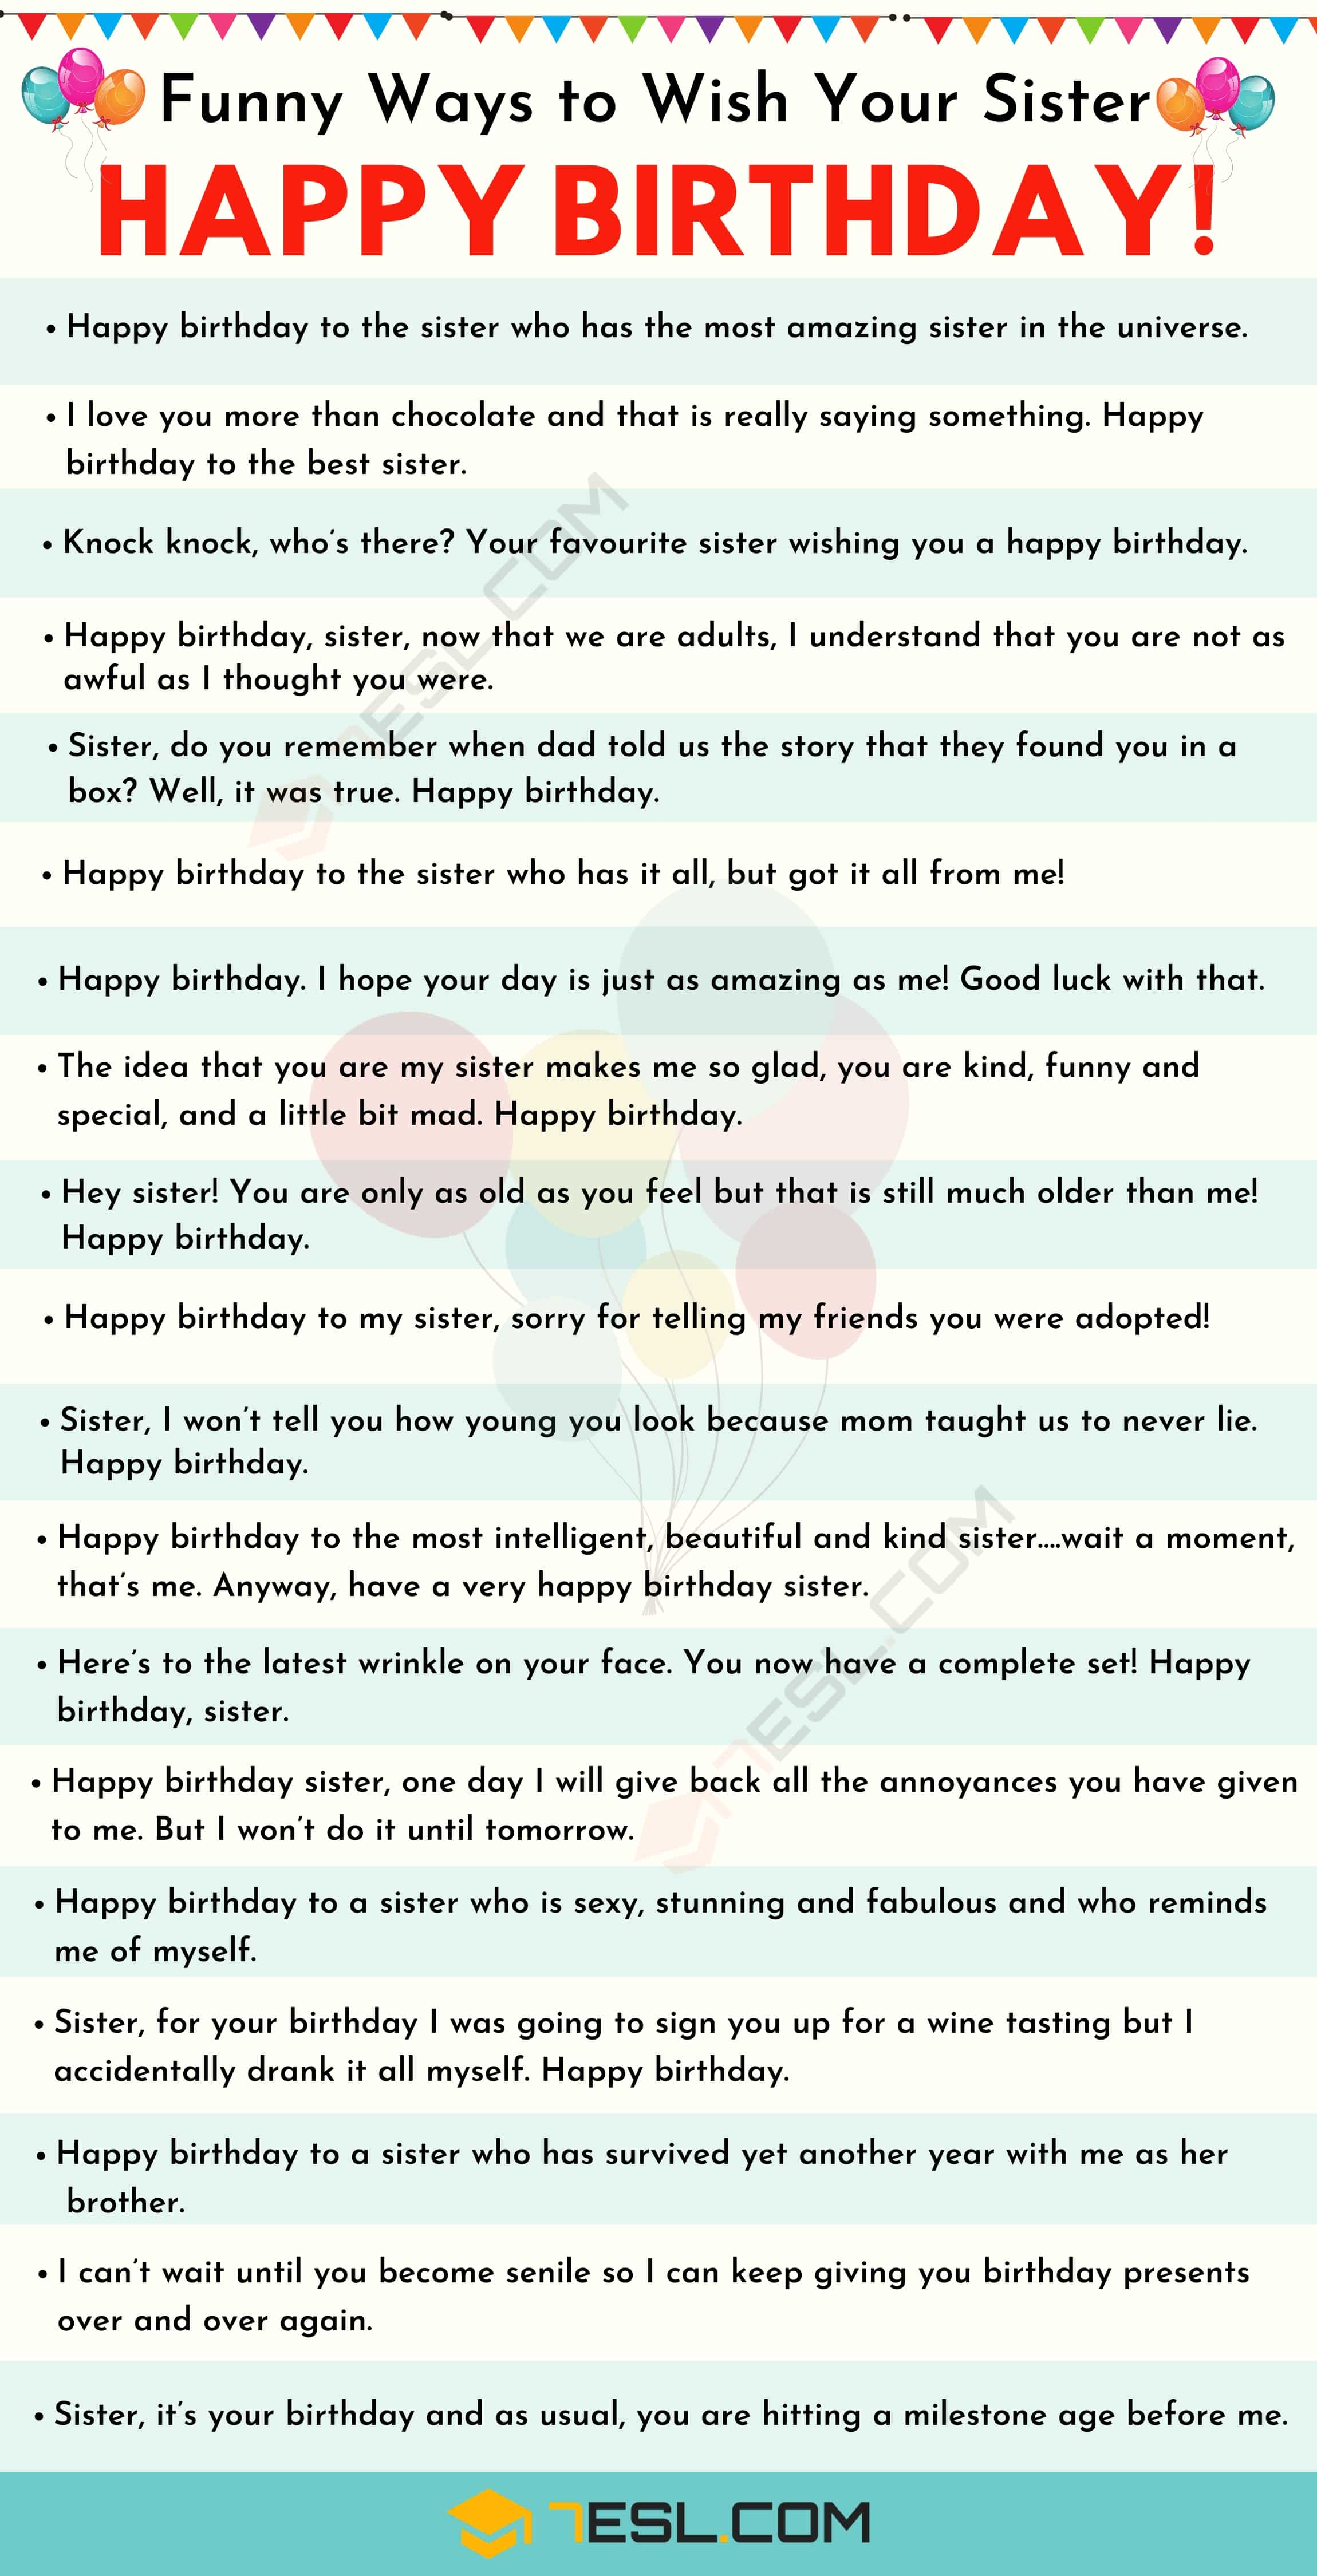 Happy Birthday Sister: 40+ Creative Birthday Wishes for Sister